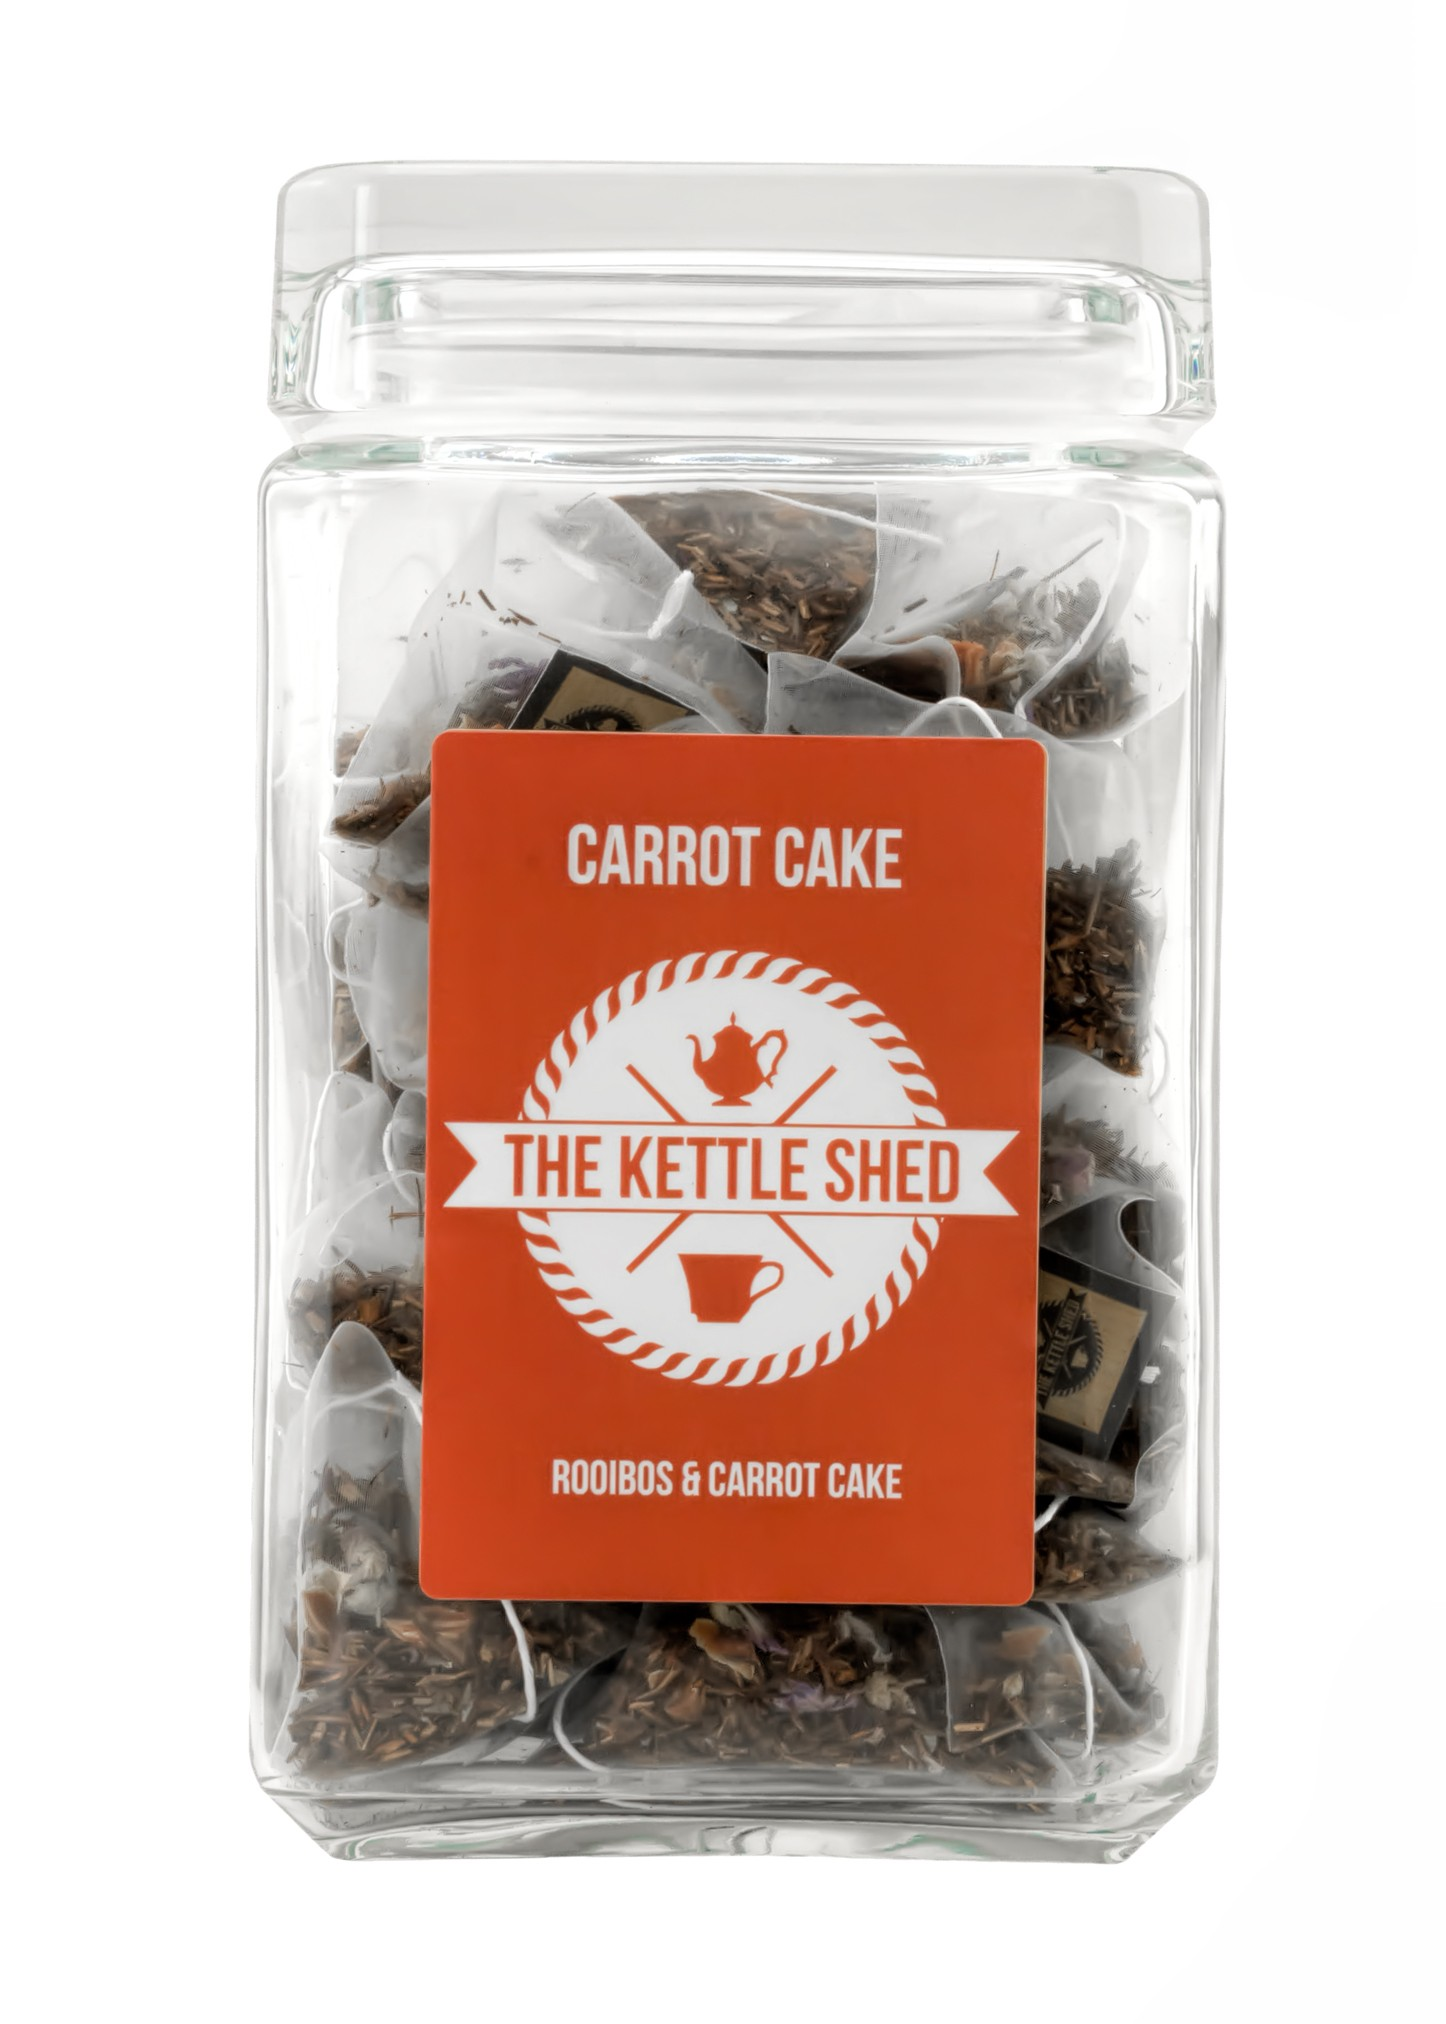 Carrot Cake - Glass Display Jar